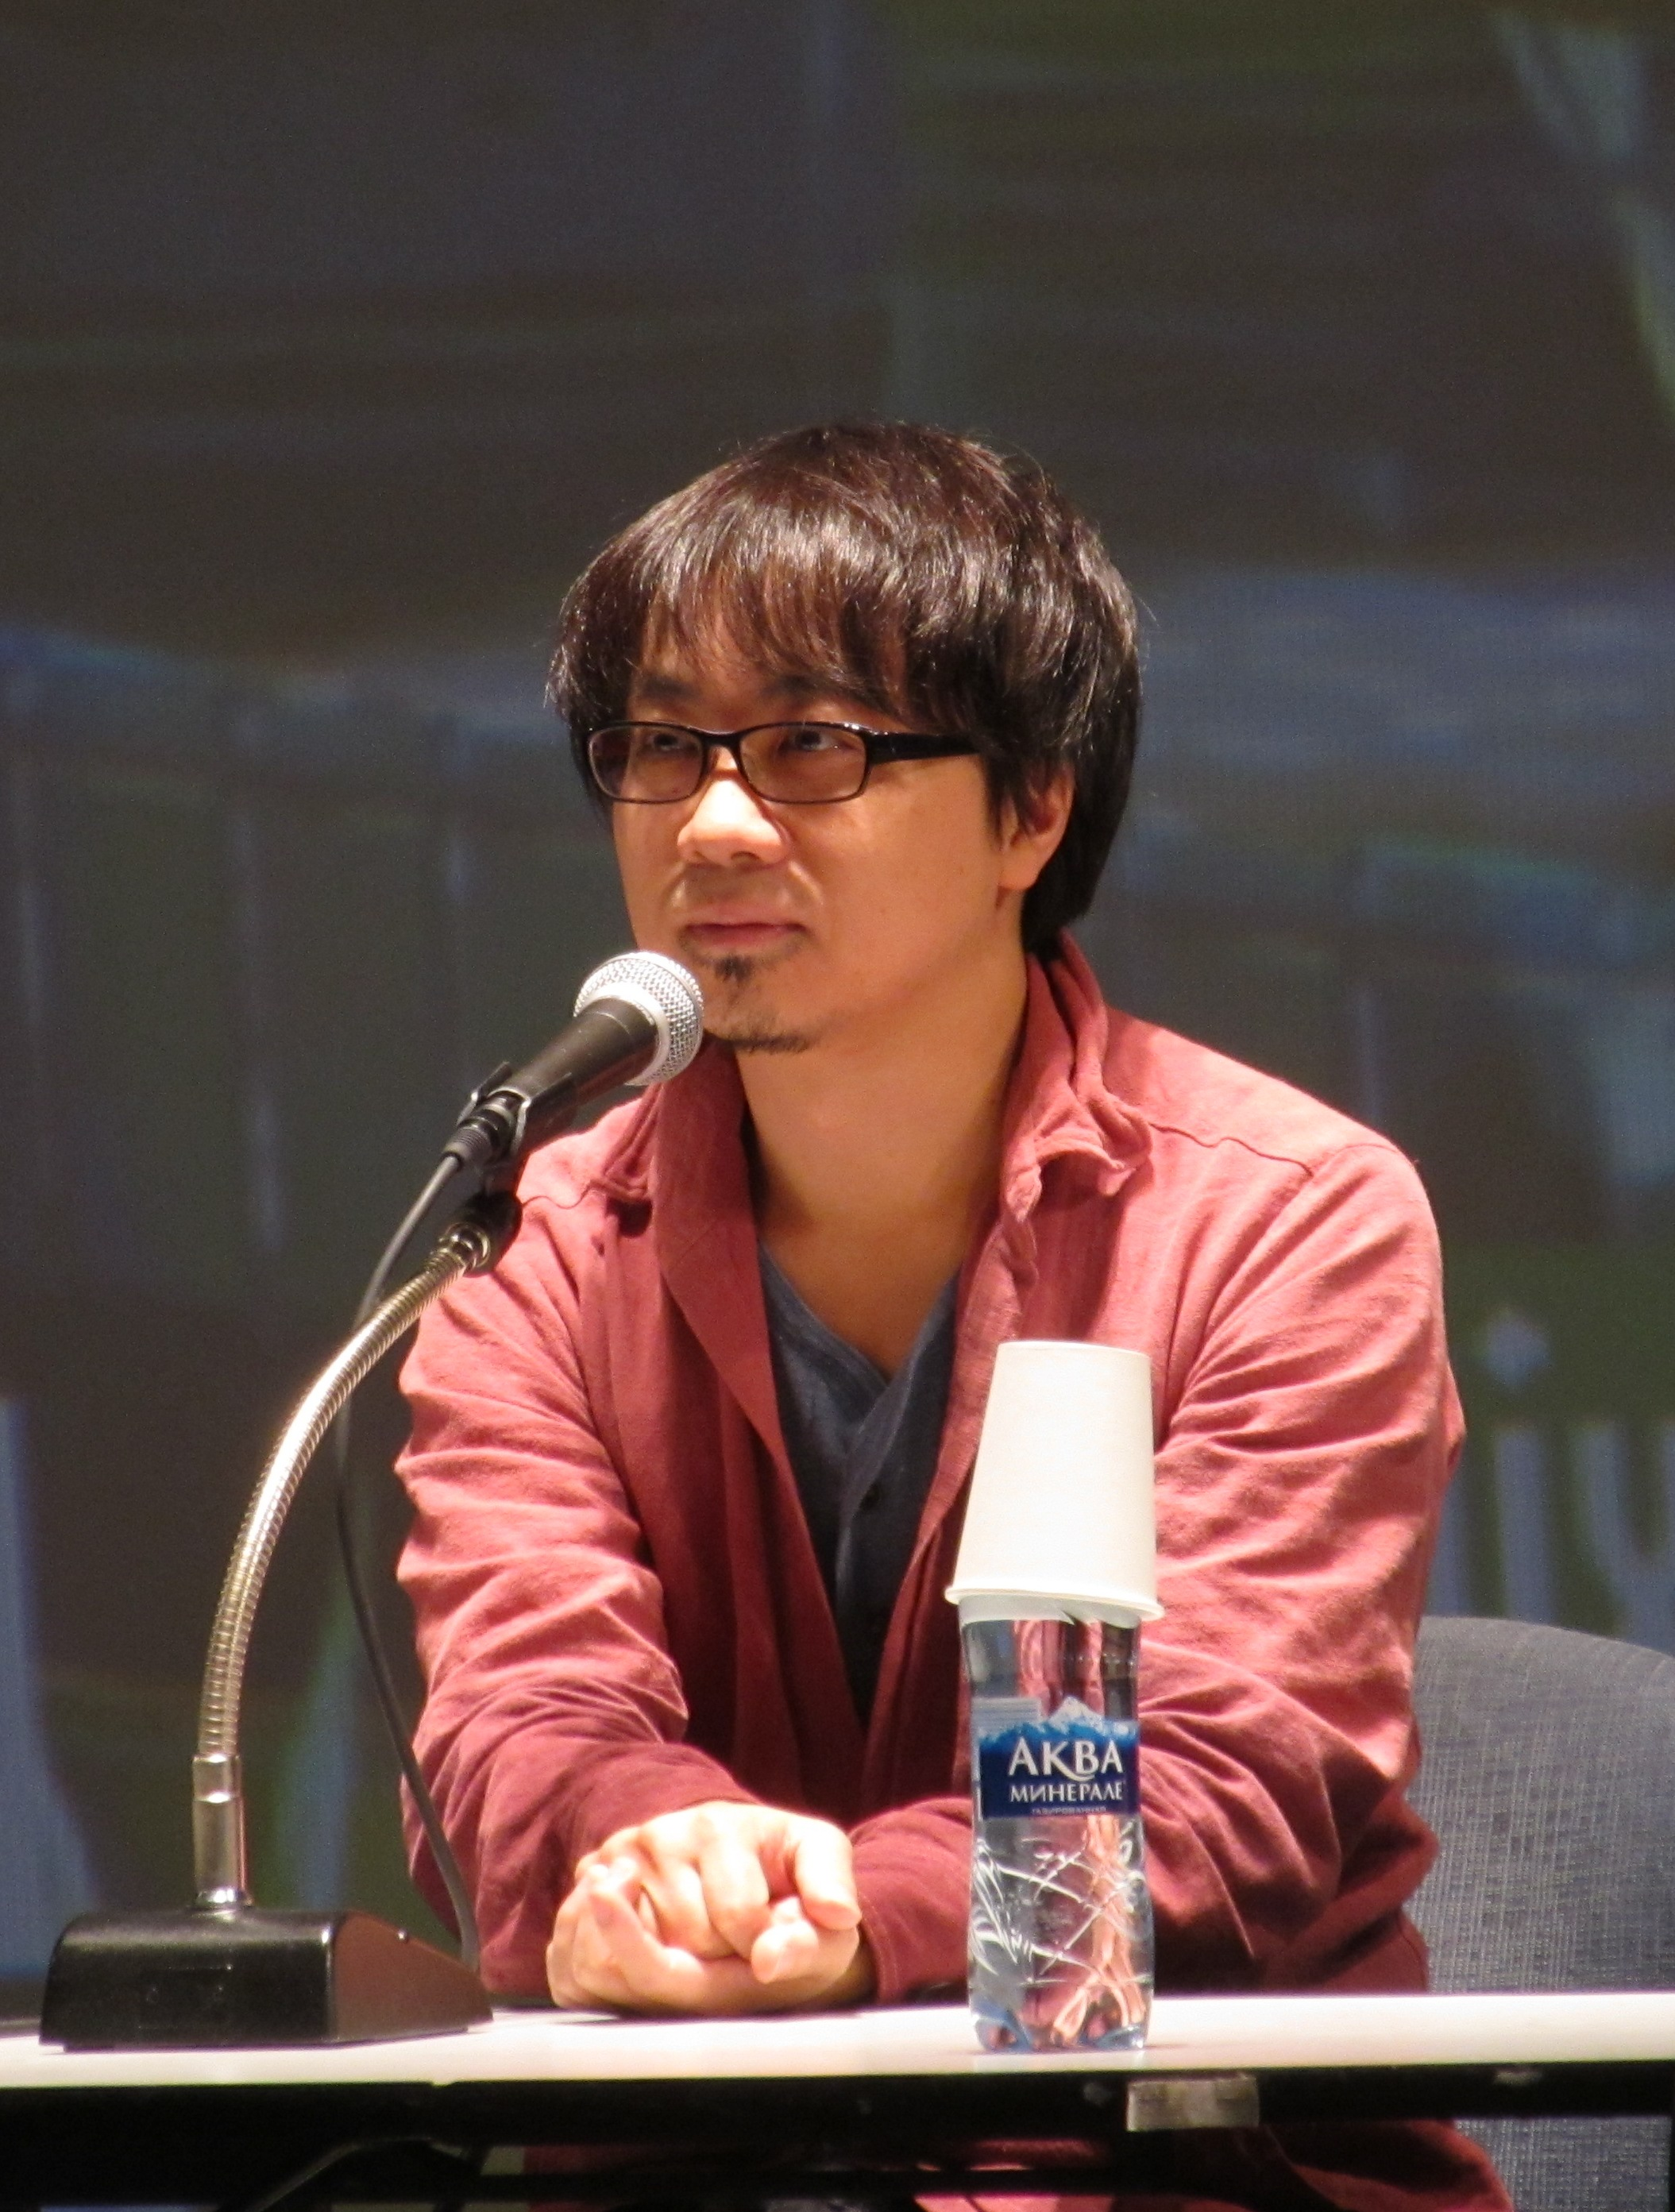 The director Mr. Makoto Shinkai is from Nagano prefecture.